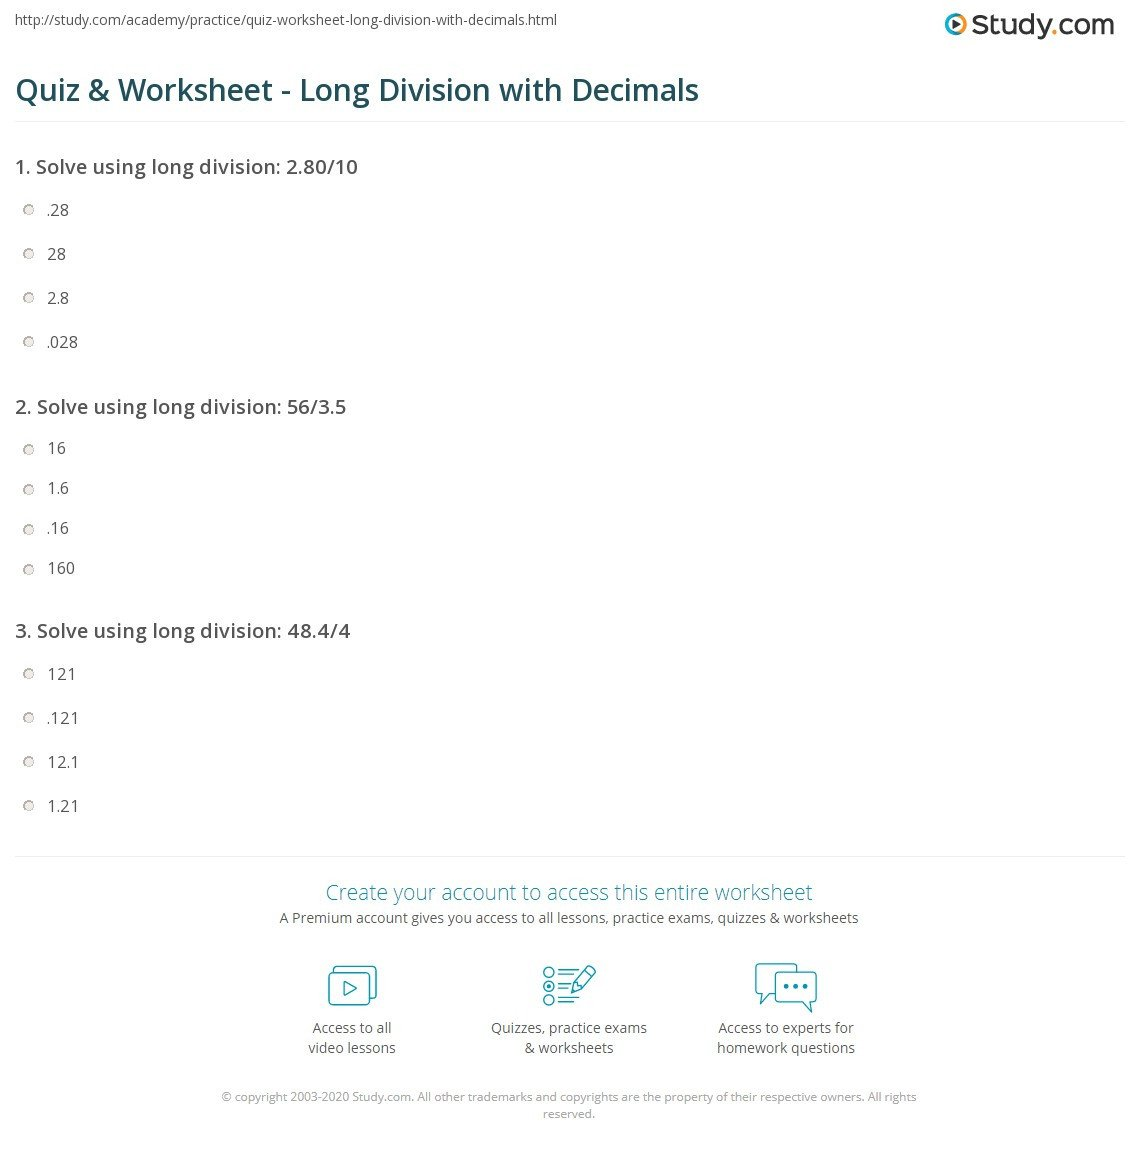 Long Division Decimals Worksheet Quiz & Worksheet Long Division with Decimals